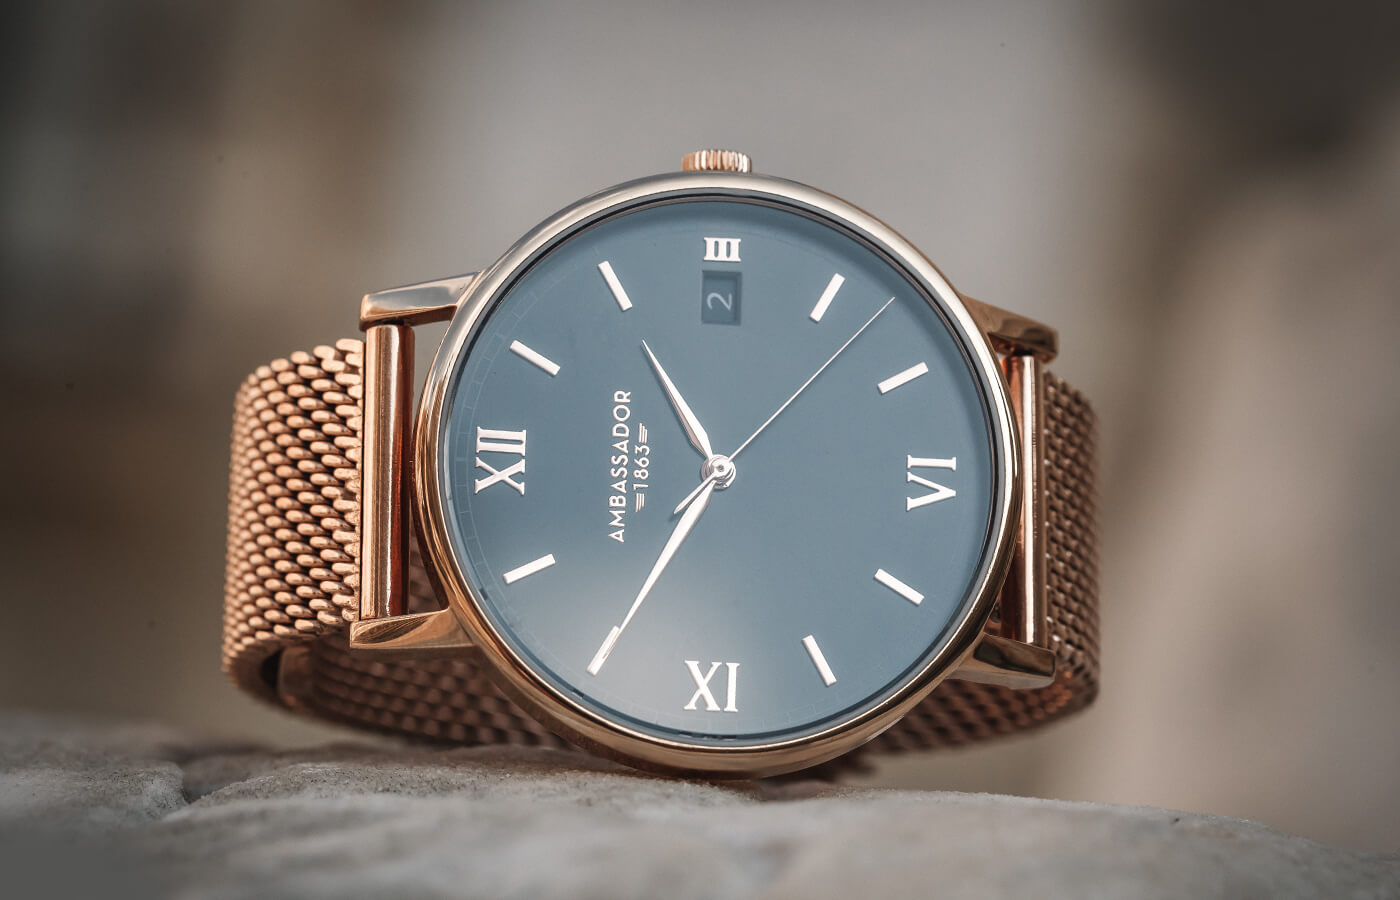 Heritage 1863 gold watch